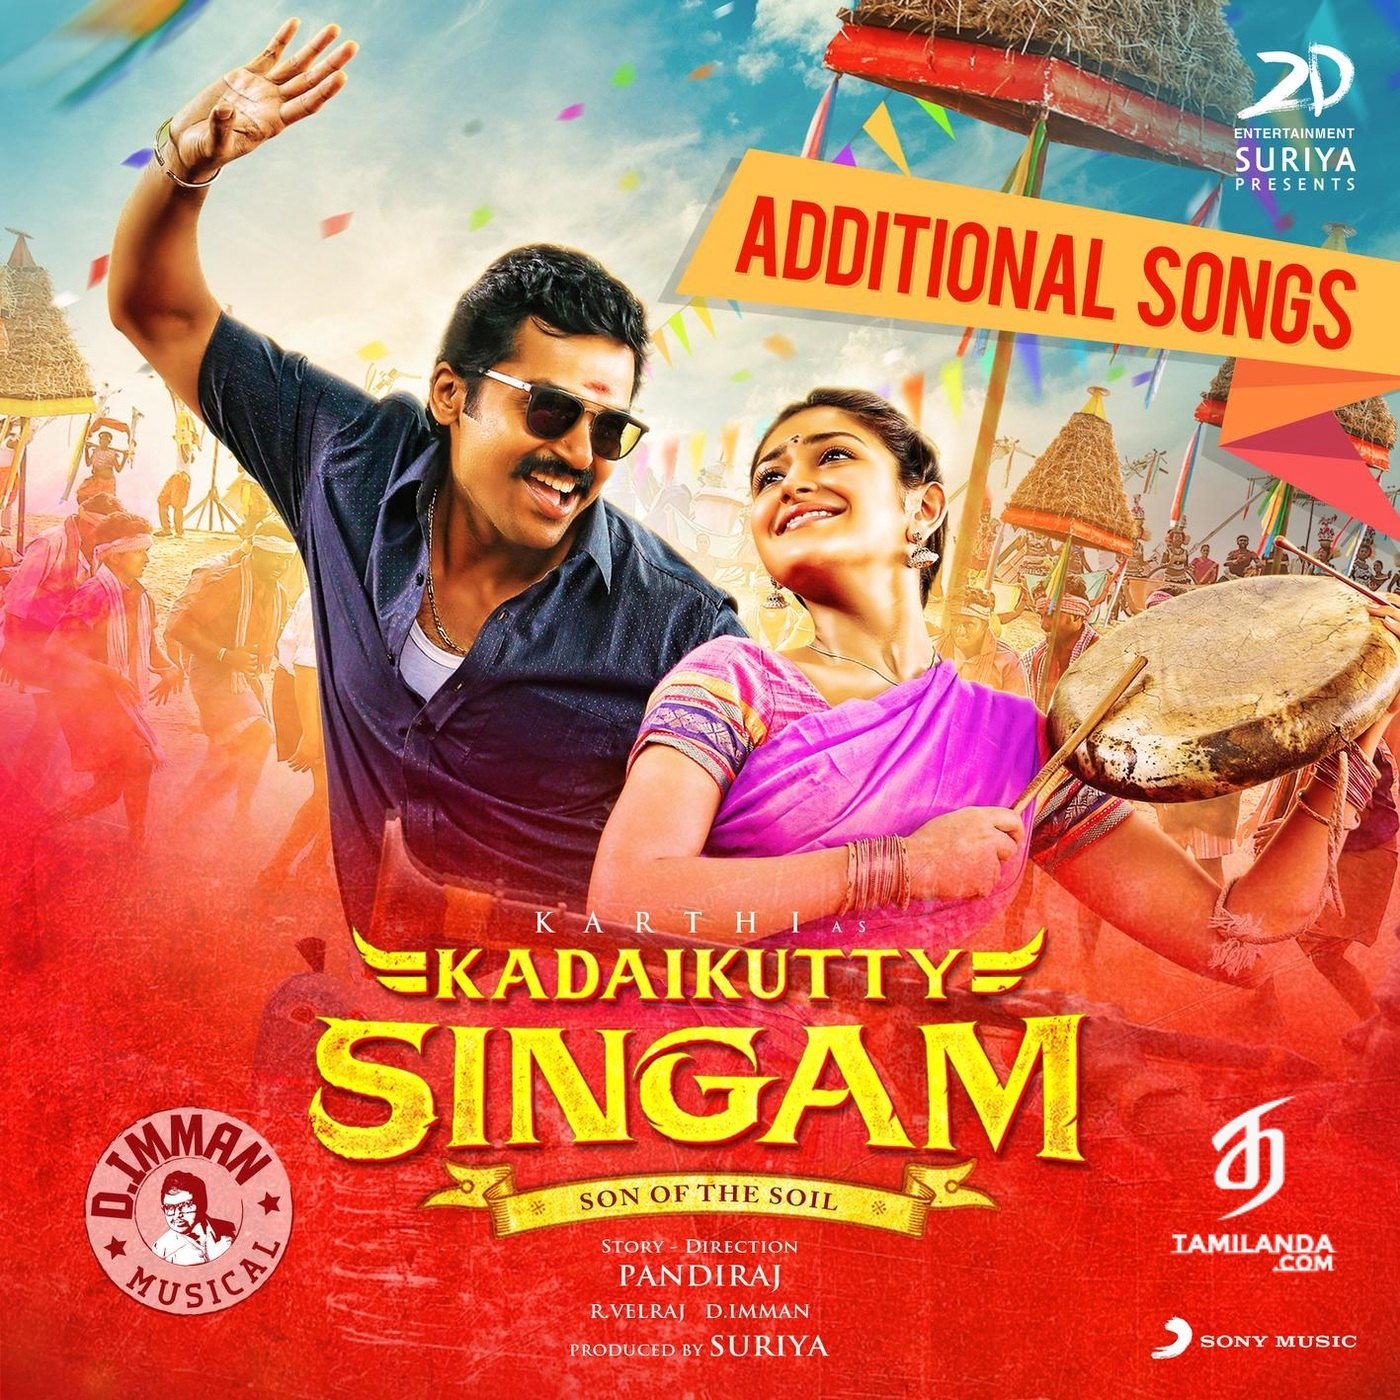 Kadaikutty Singam (Additional Songs) FLAC Songs